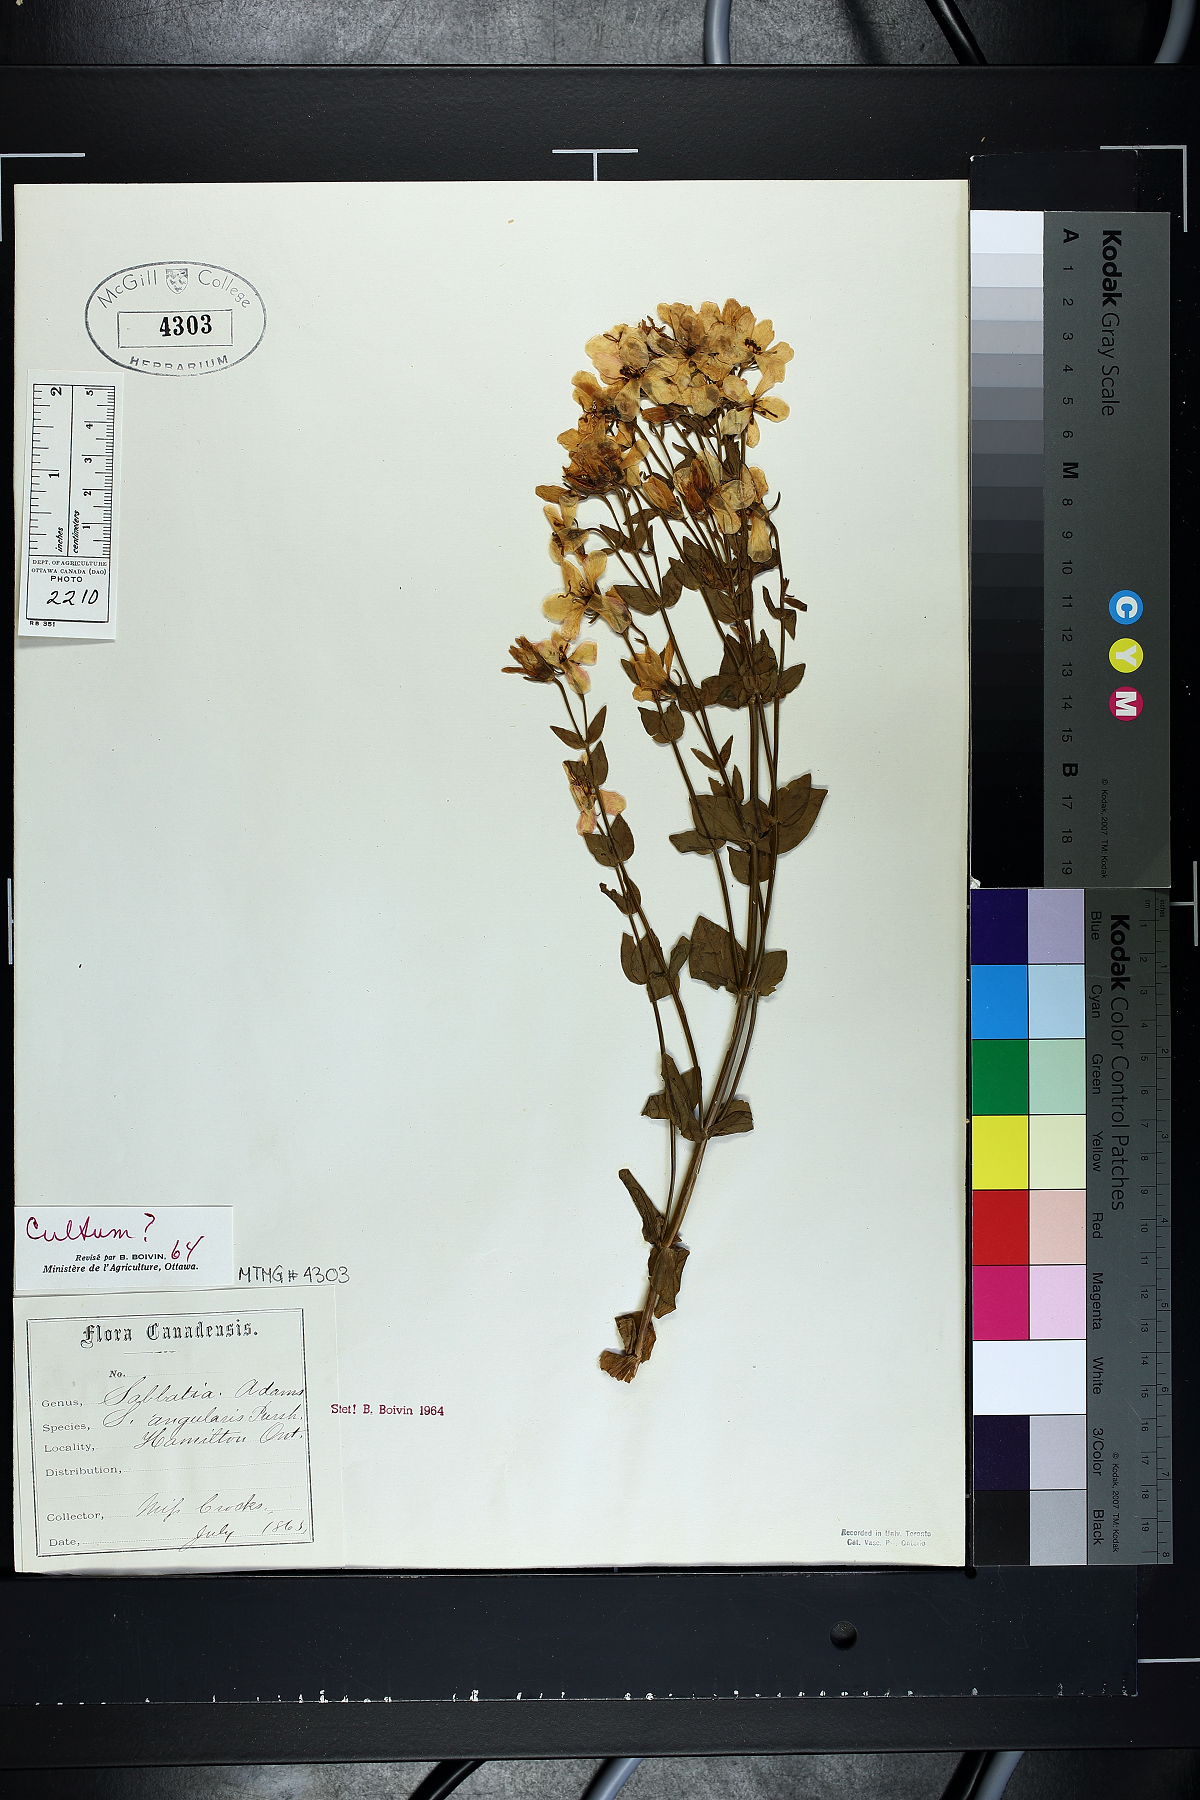 Photo of a yellow flower specimen on a herbarium sheet